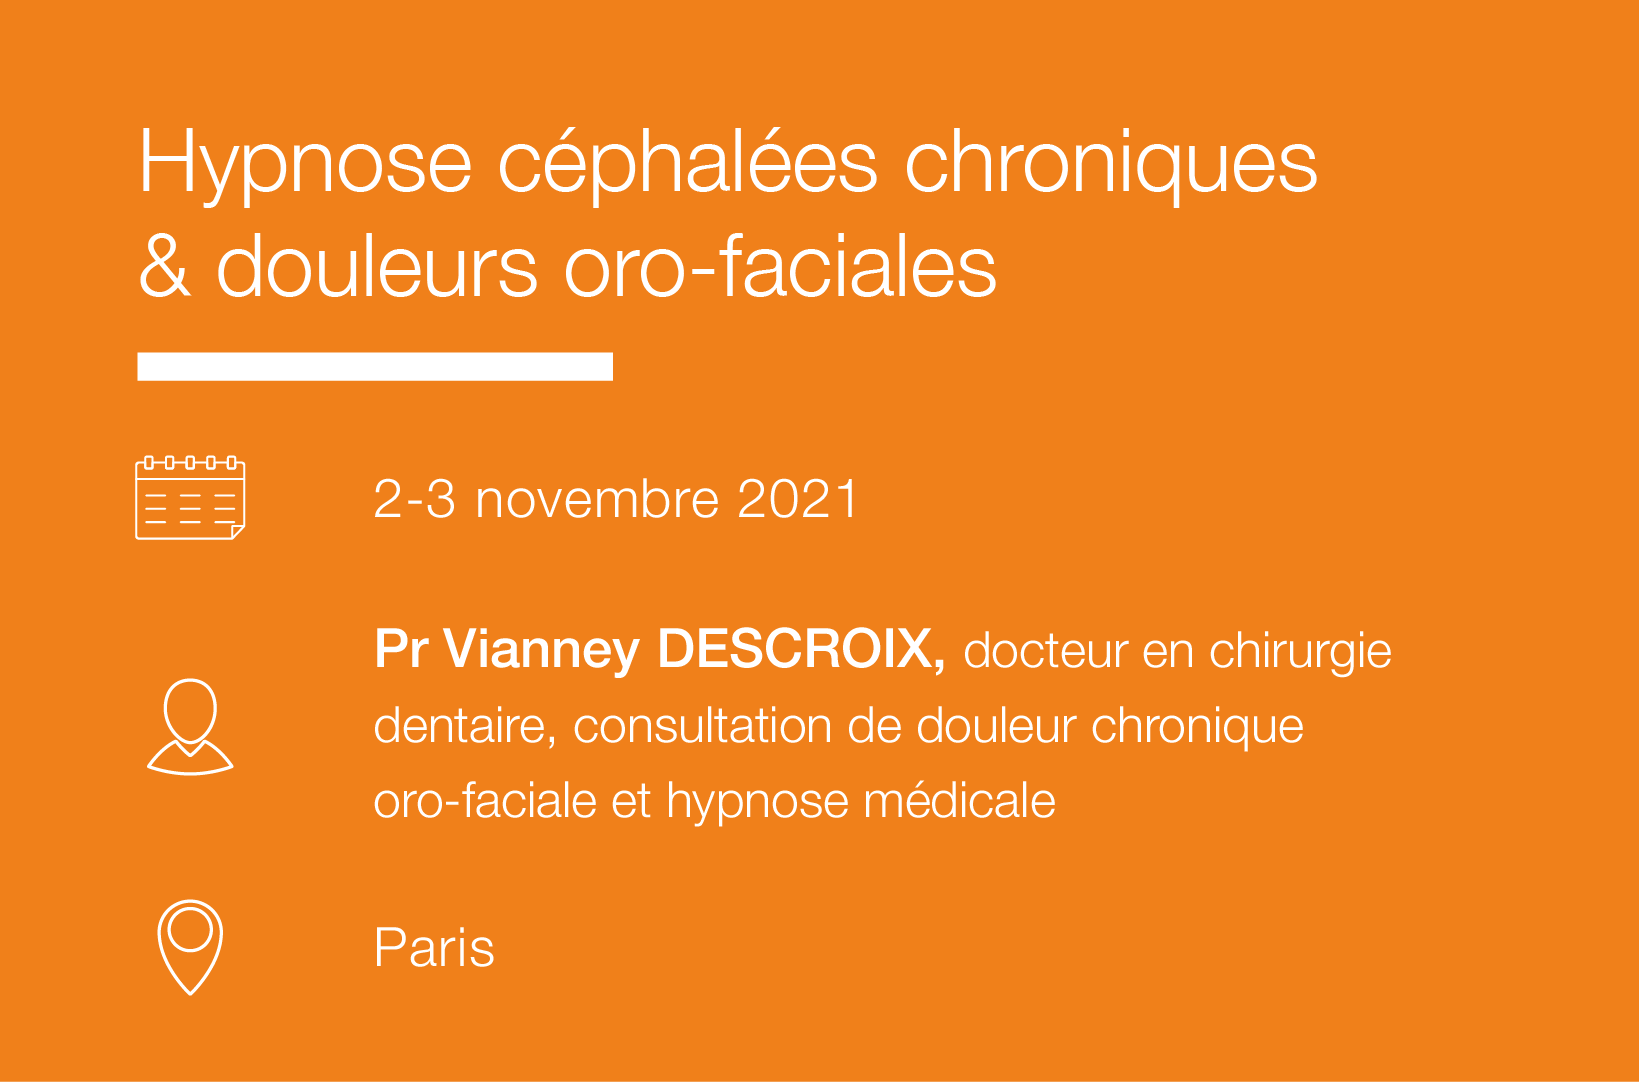 Seminaire Hypnose cephalees chroniques & douleurs oro-faciales-IFH